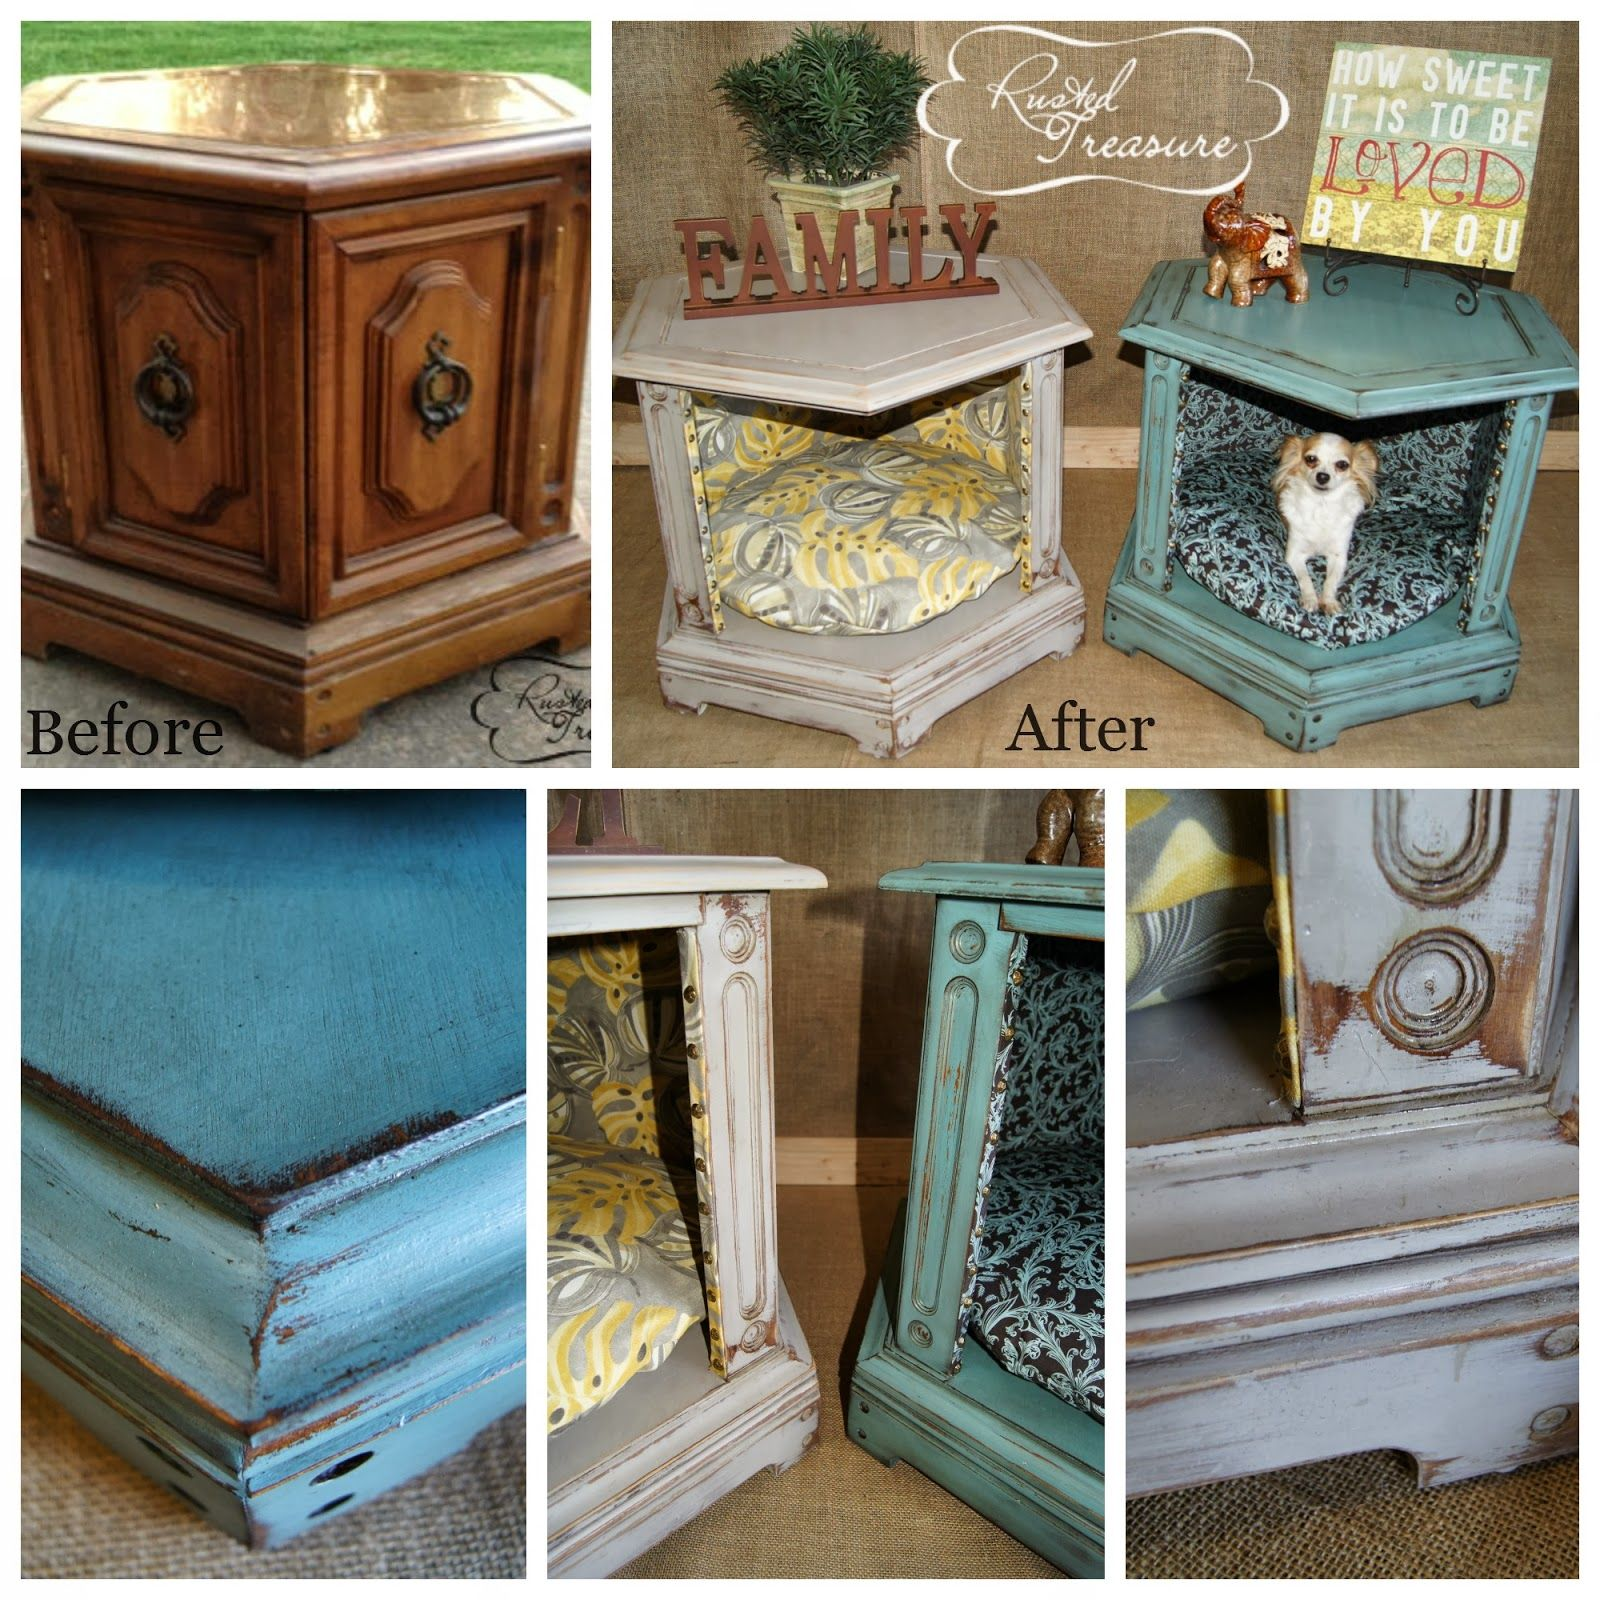 ANYONE HAVE AN END TABLE LIKE THIS????? Rusted Treasure